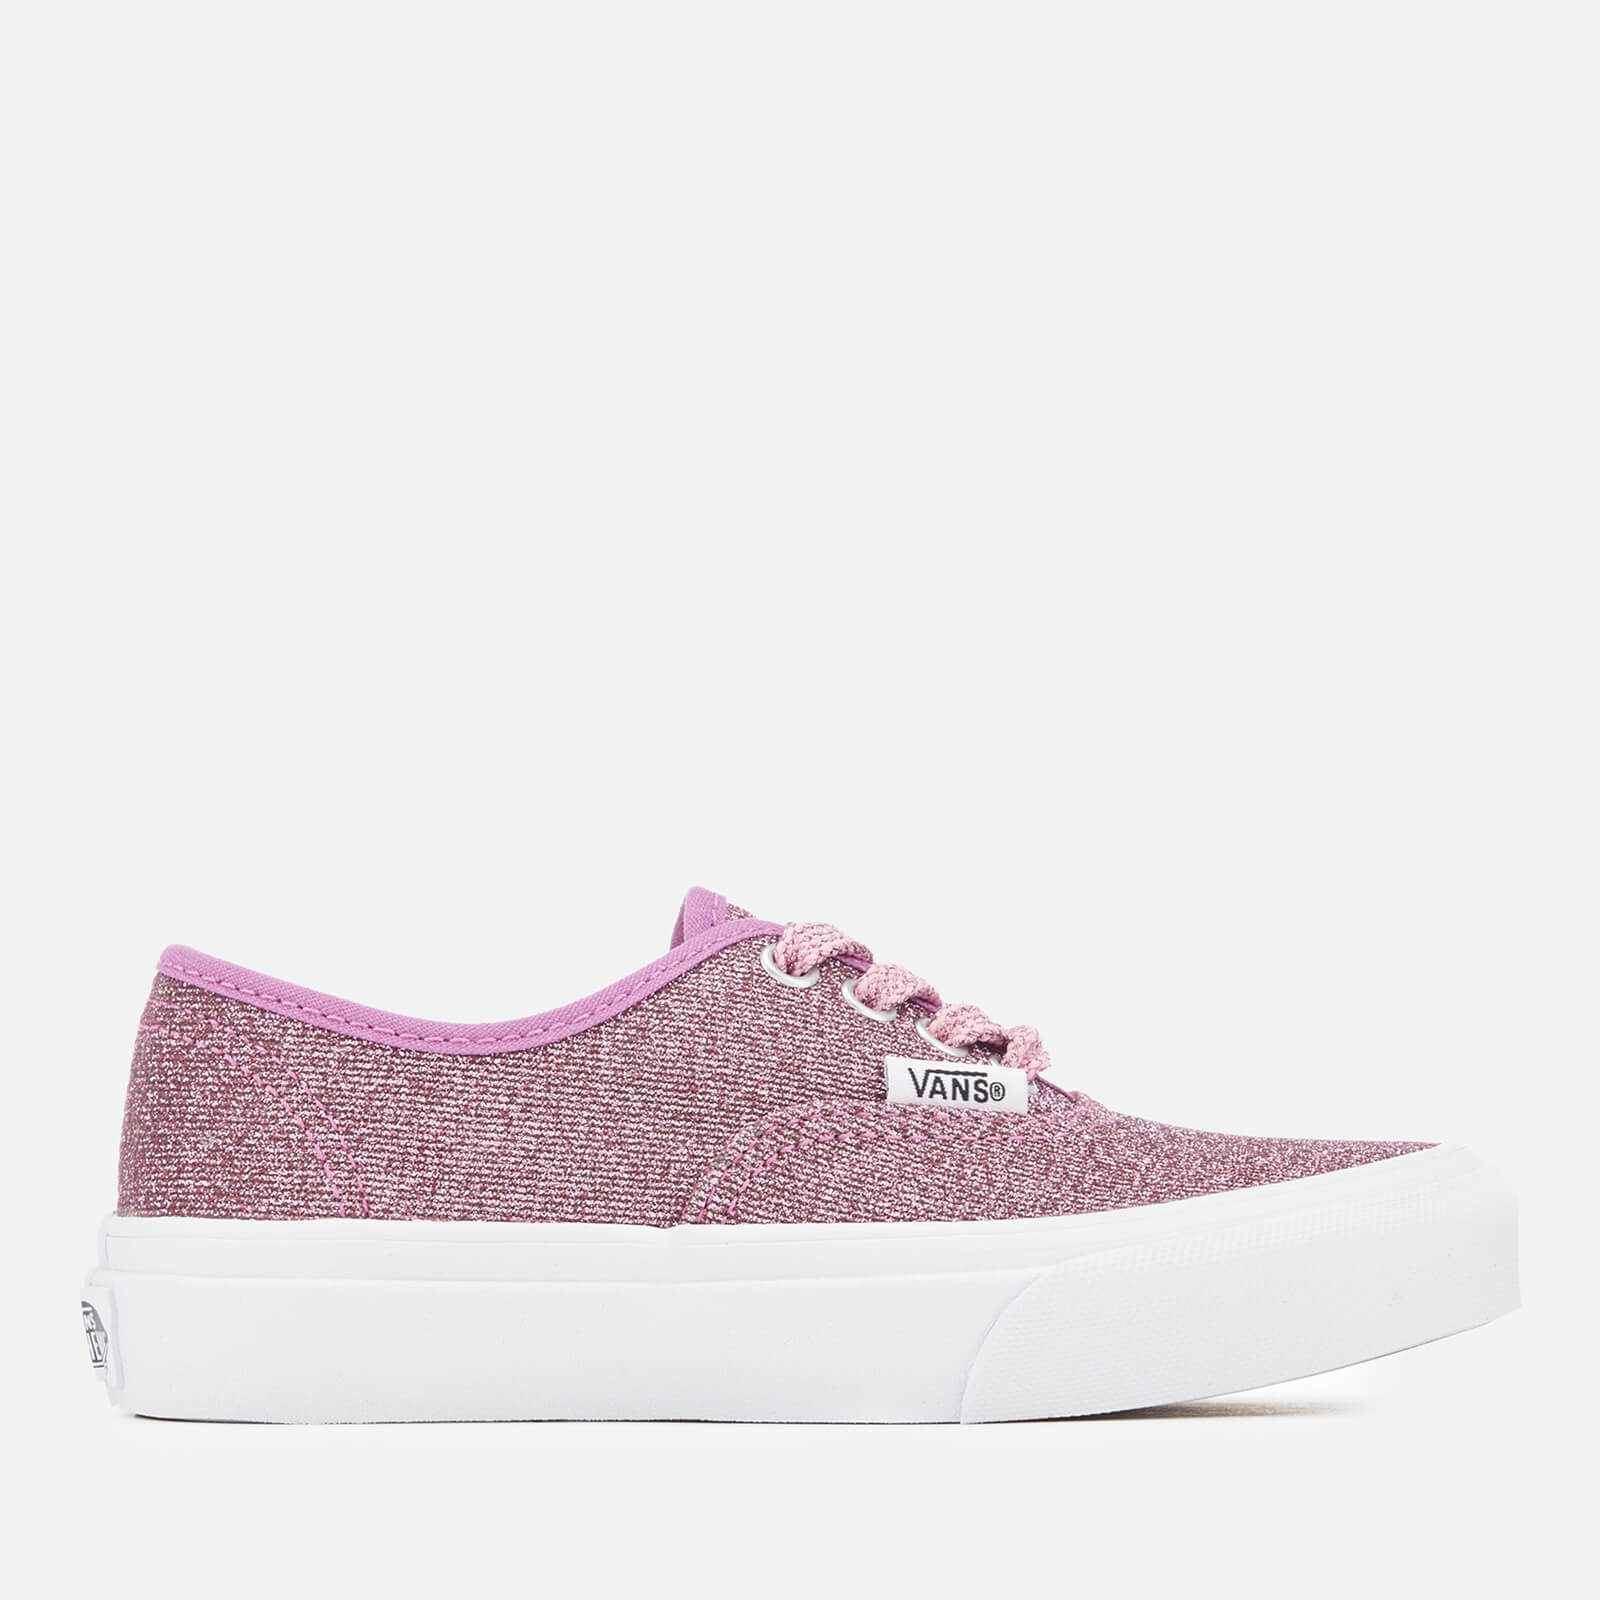 b51eff049ef28a Vans Kids  Authentic Lurex Glitter Trainers - Pink True White